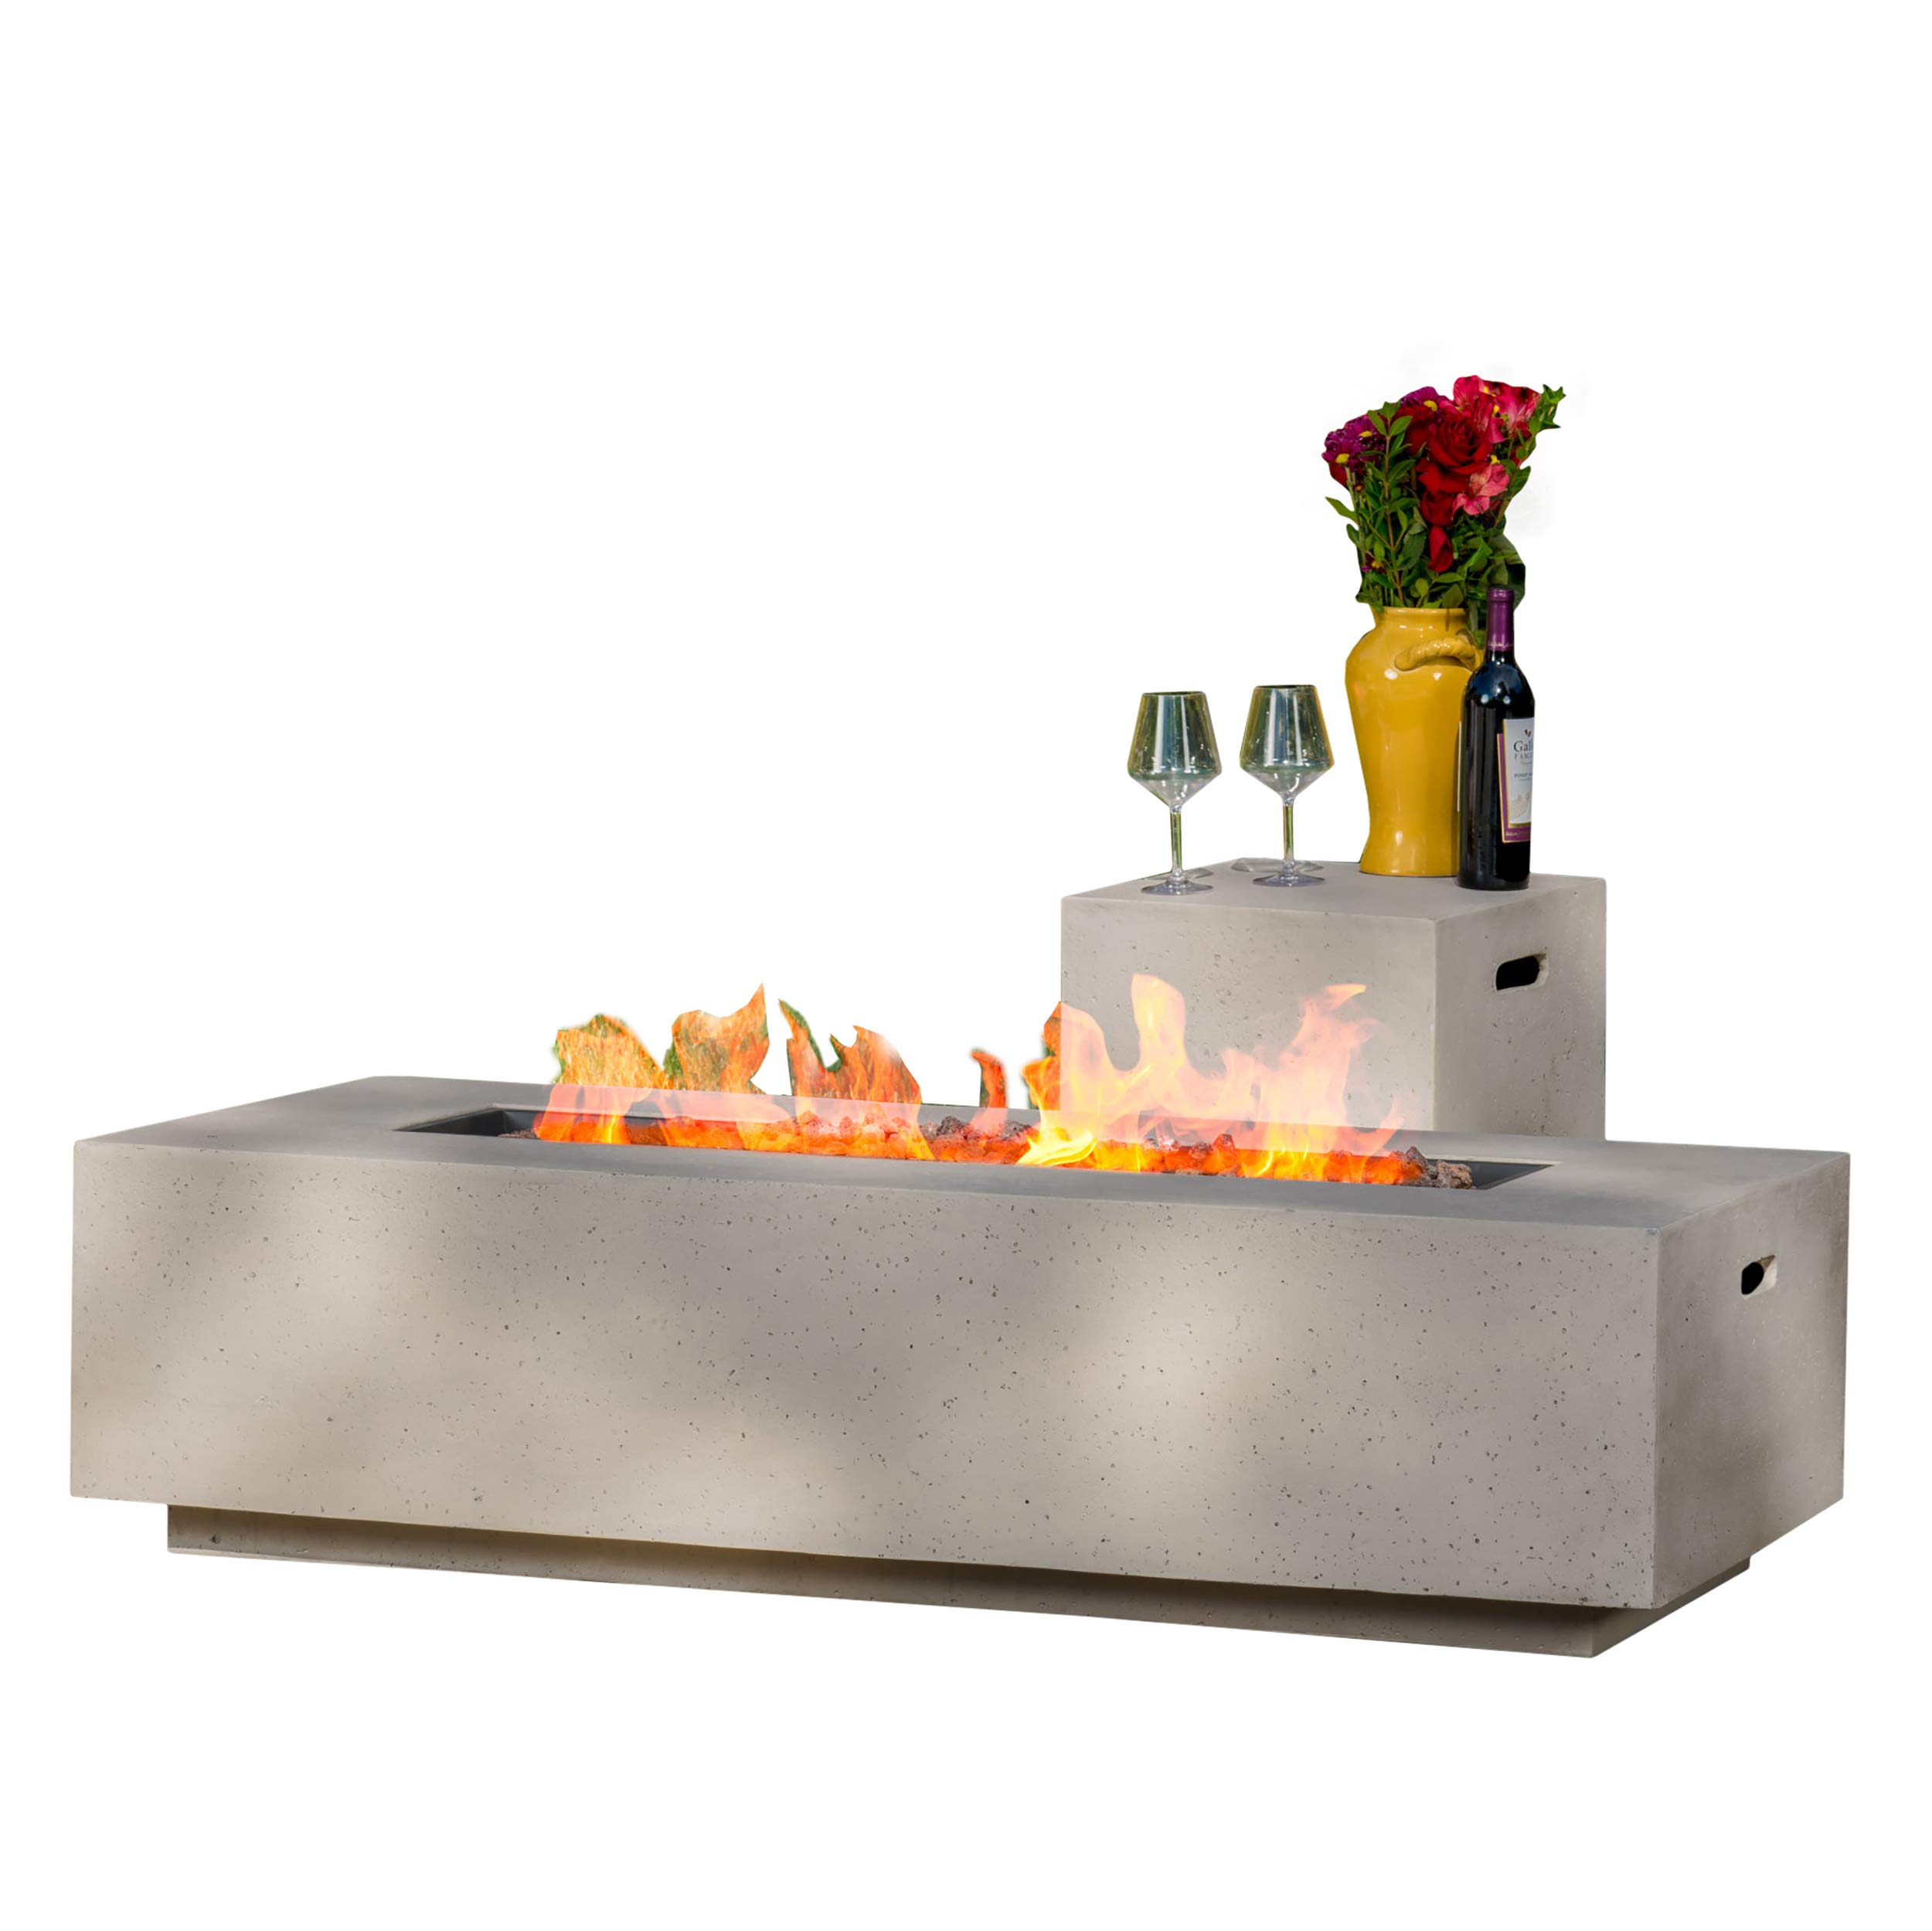 Christopher Knight Home 296666 Jaxon Outdoor Fire Table with Lava Rocks & Tank Holder (Light Grey), White by Christopher Knight Home